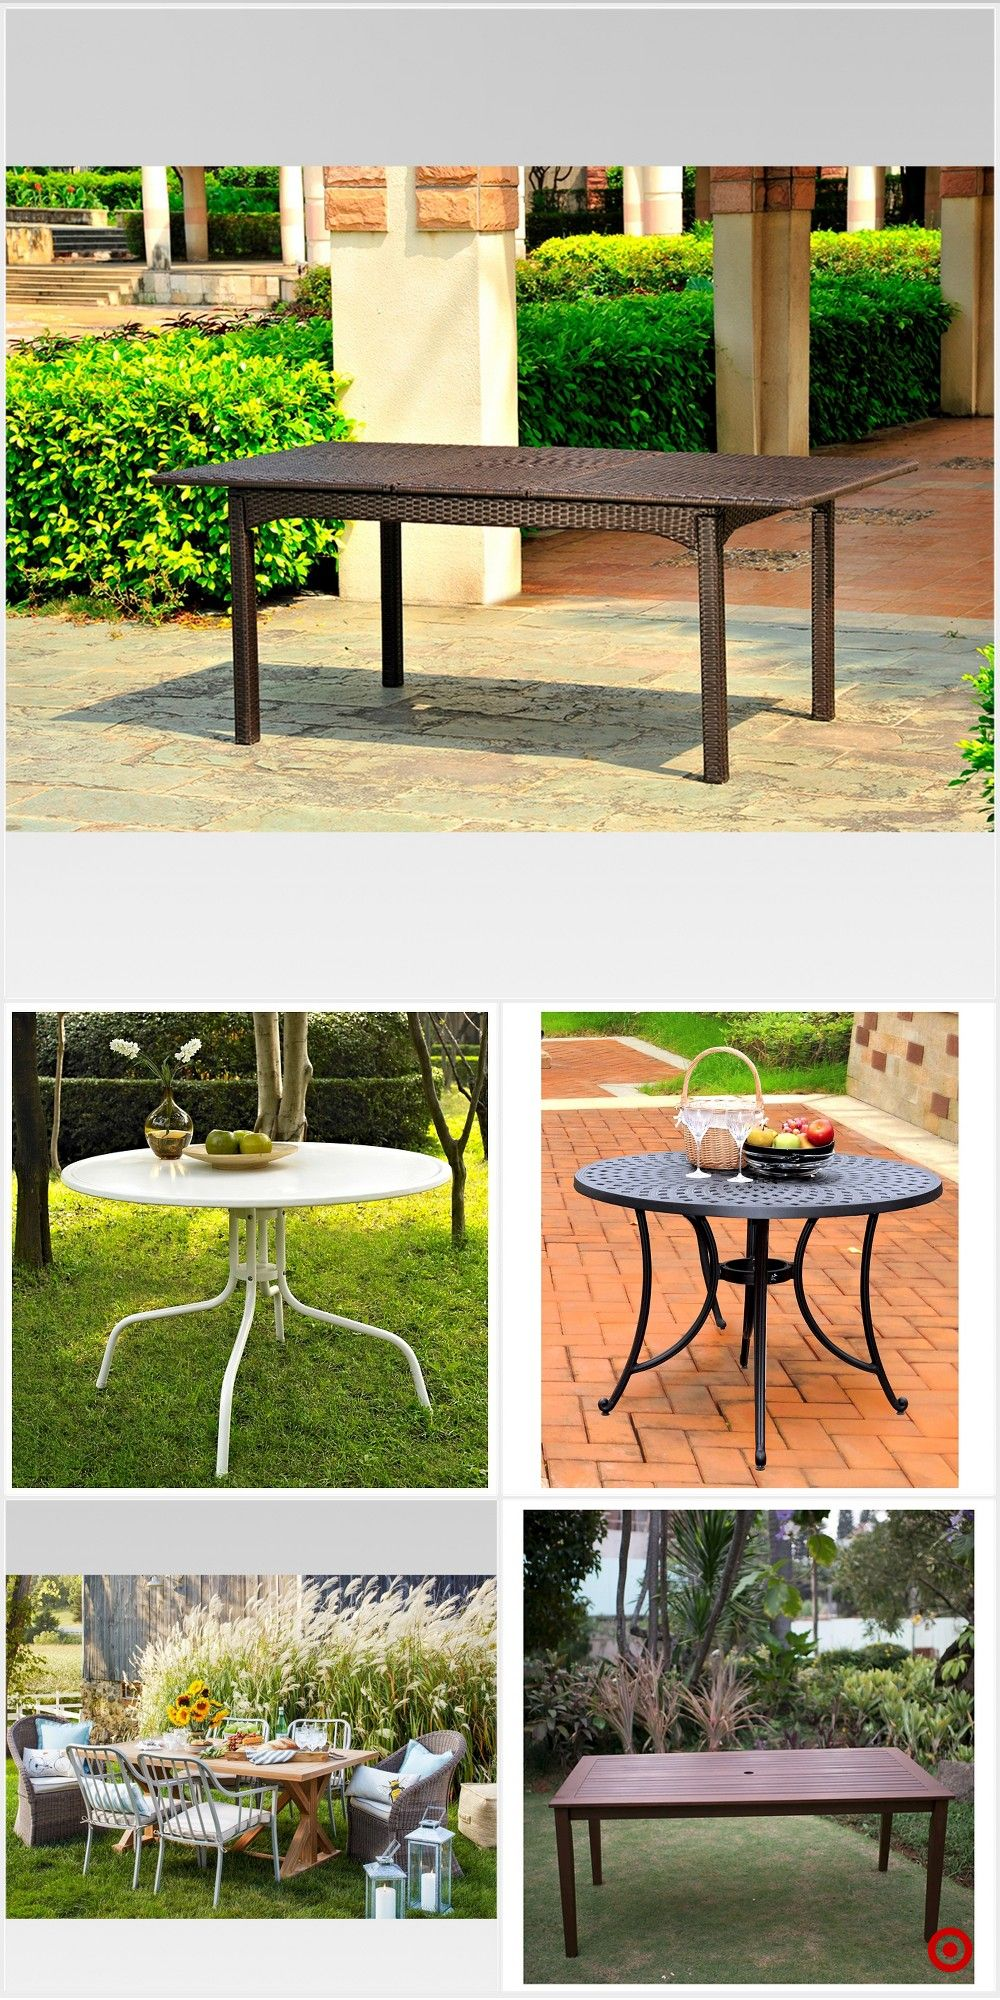 Target For Patio Dining Table You Will Love At Great Low Prices Free Shipping On Orders Of 35 Or Same Day Pick Up In